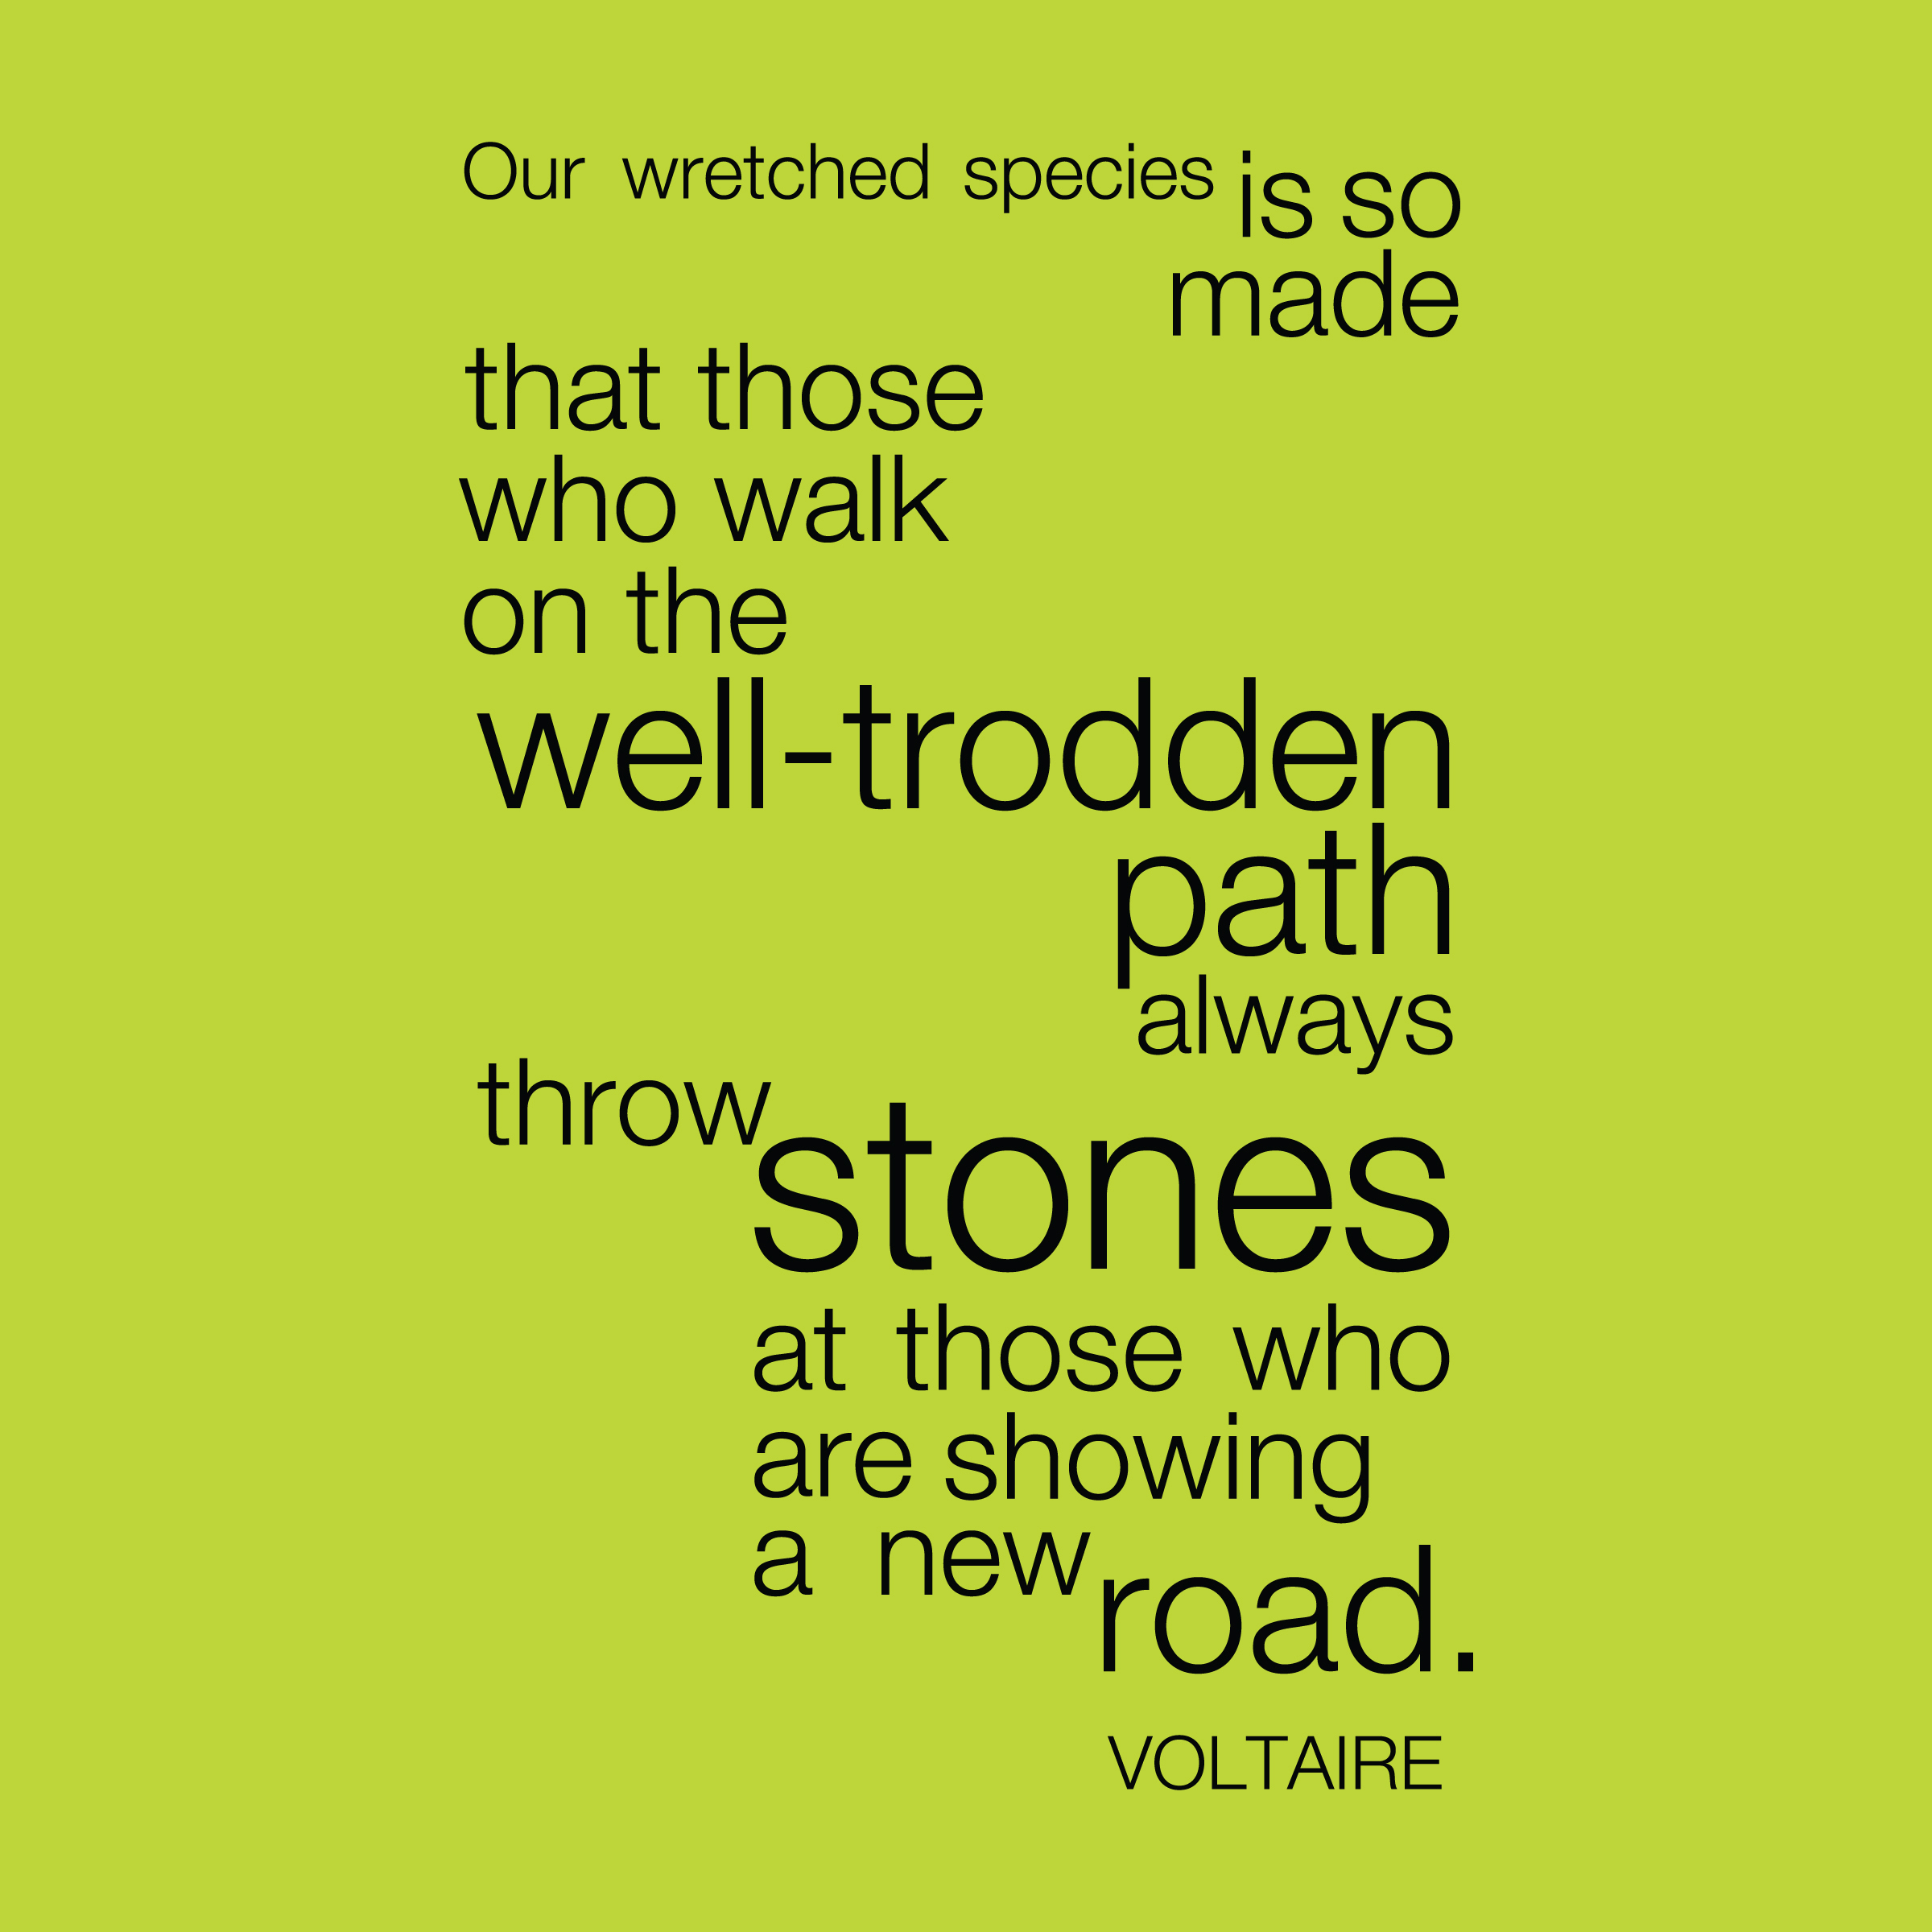 8 Ancient Voltaire Quotes To Ponder